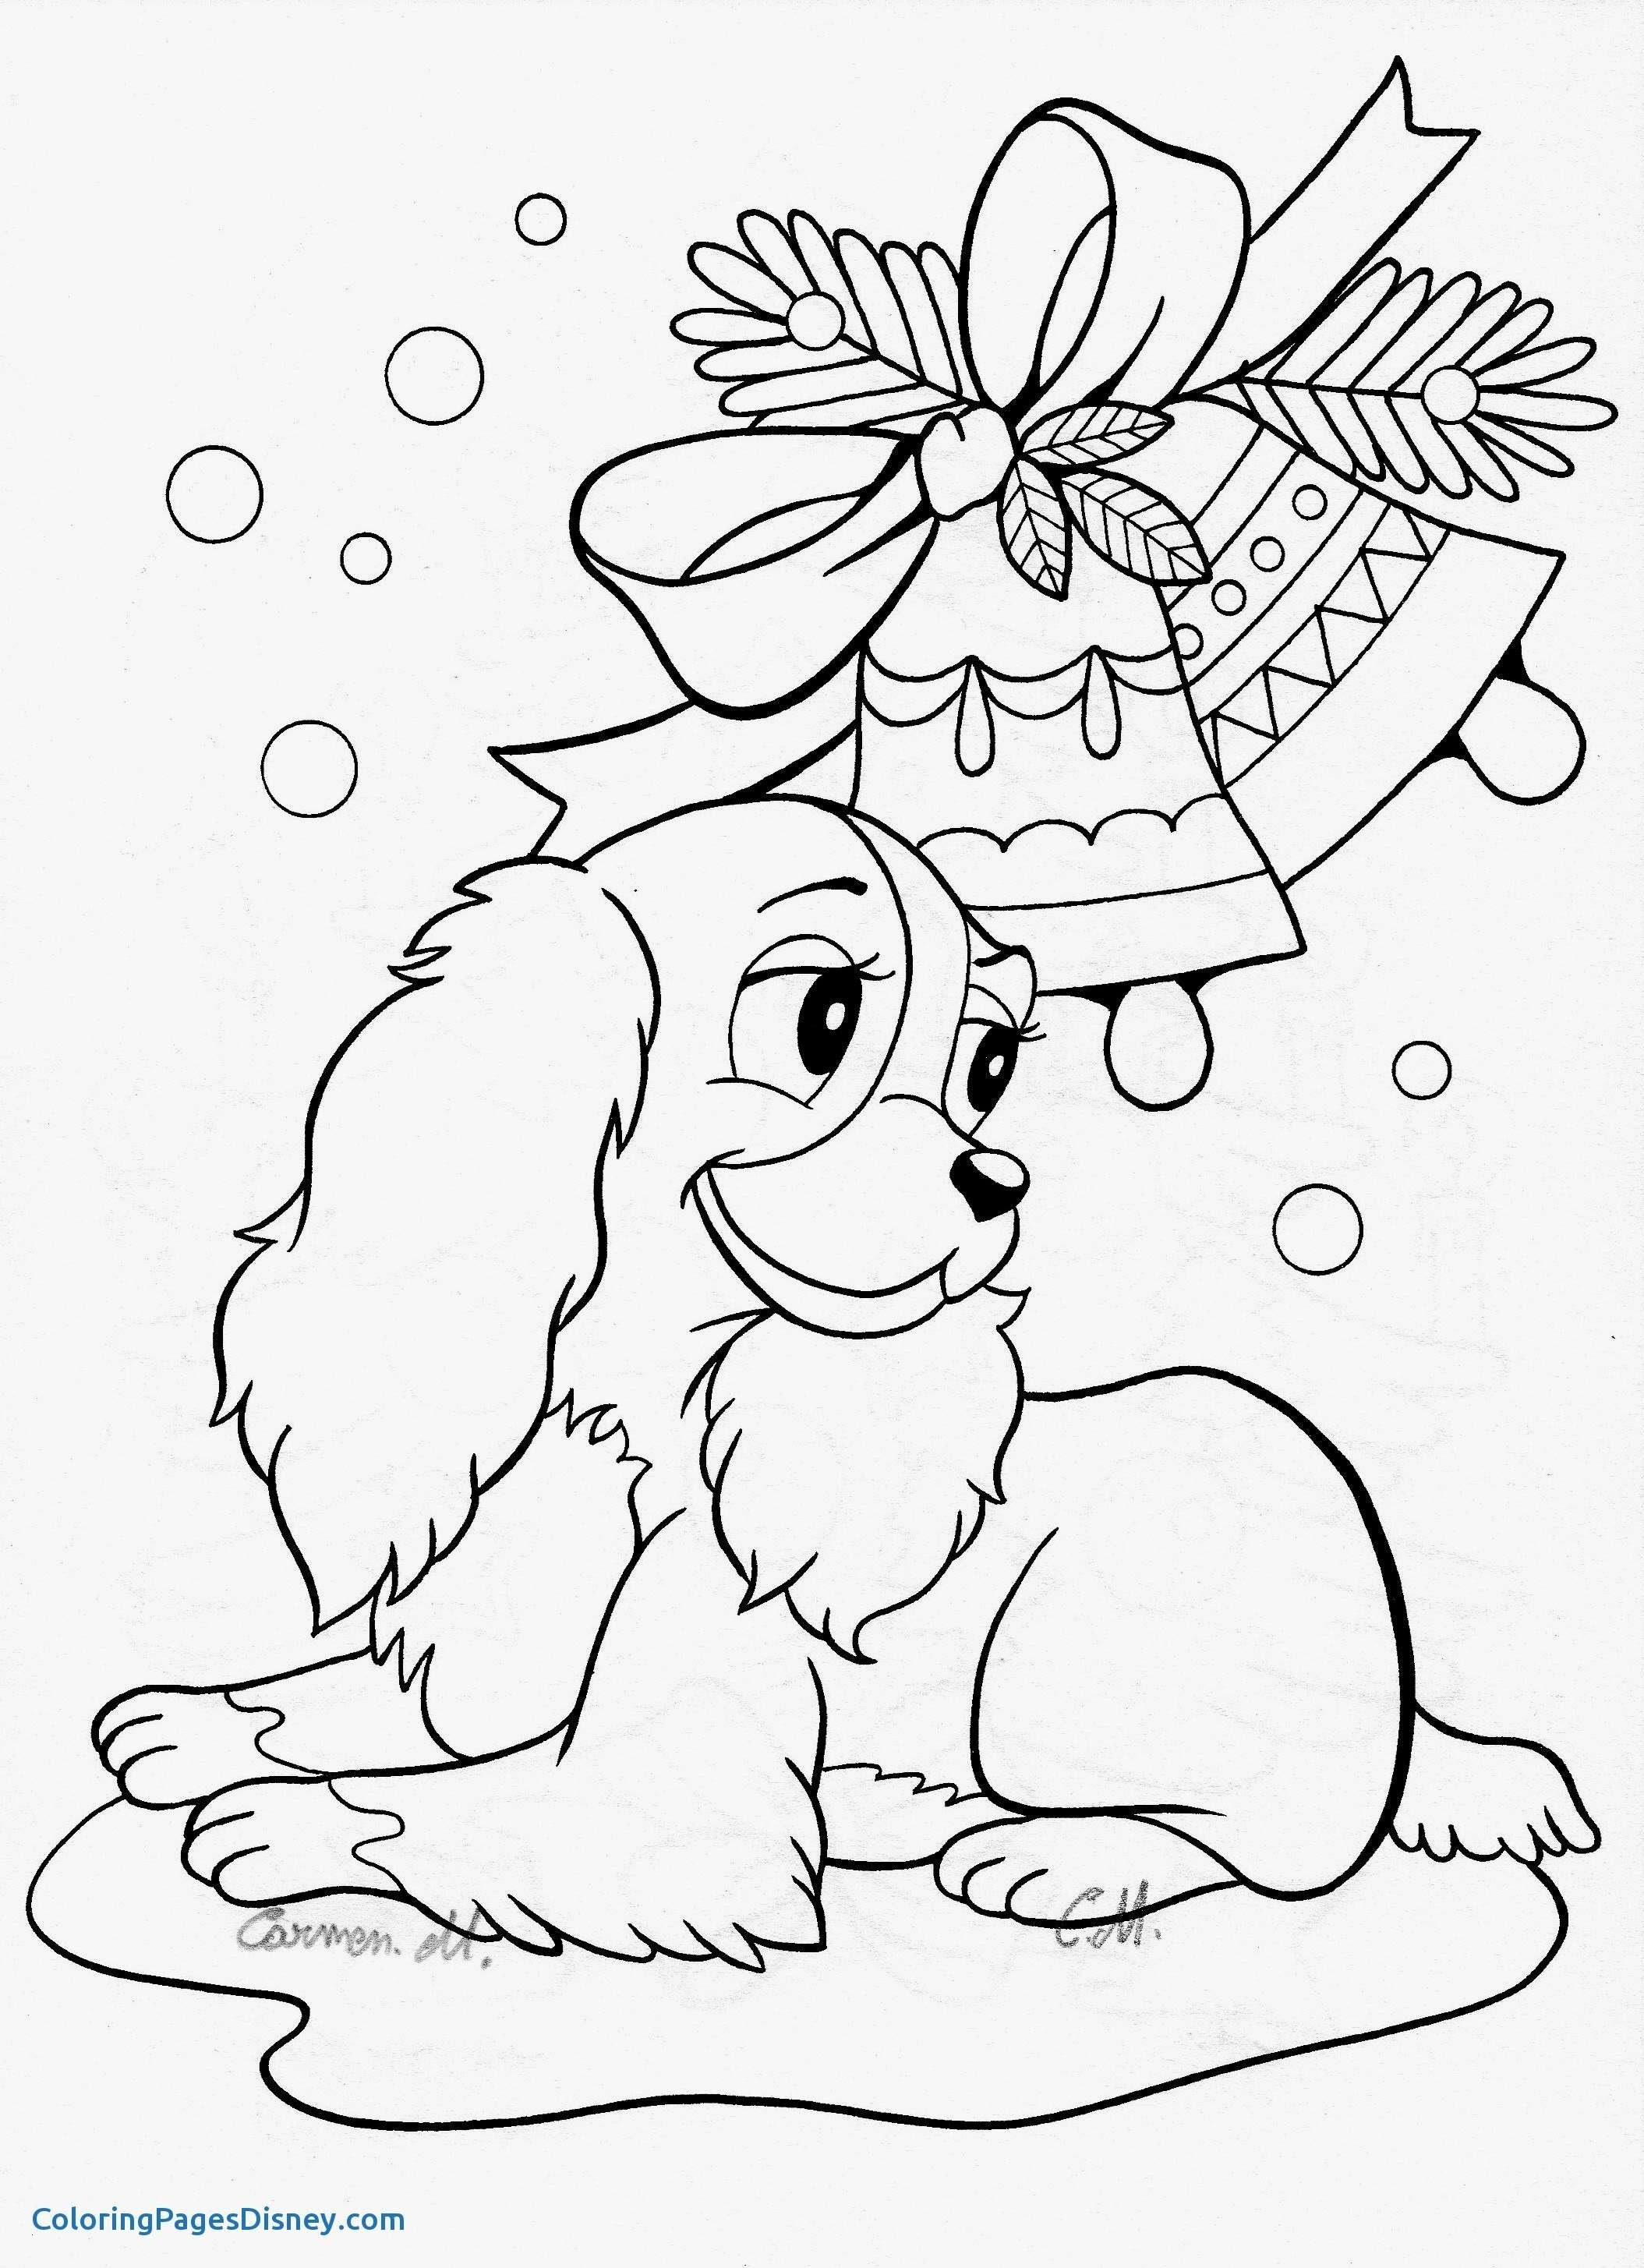 free online coloring pages disney Collection-Disney Princess Christmas Printable Coloring Pages Free Printable Inspirierend Disney Prinzessinnen Malvorlagen Cinderella 18-l